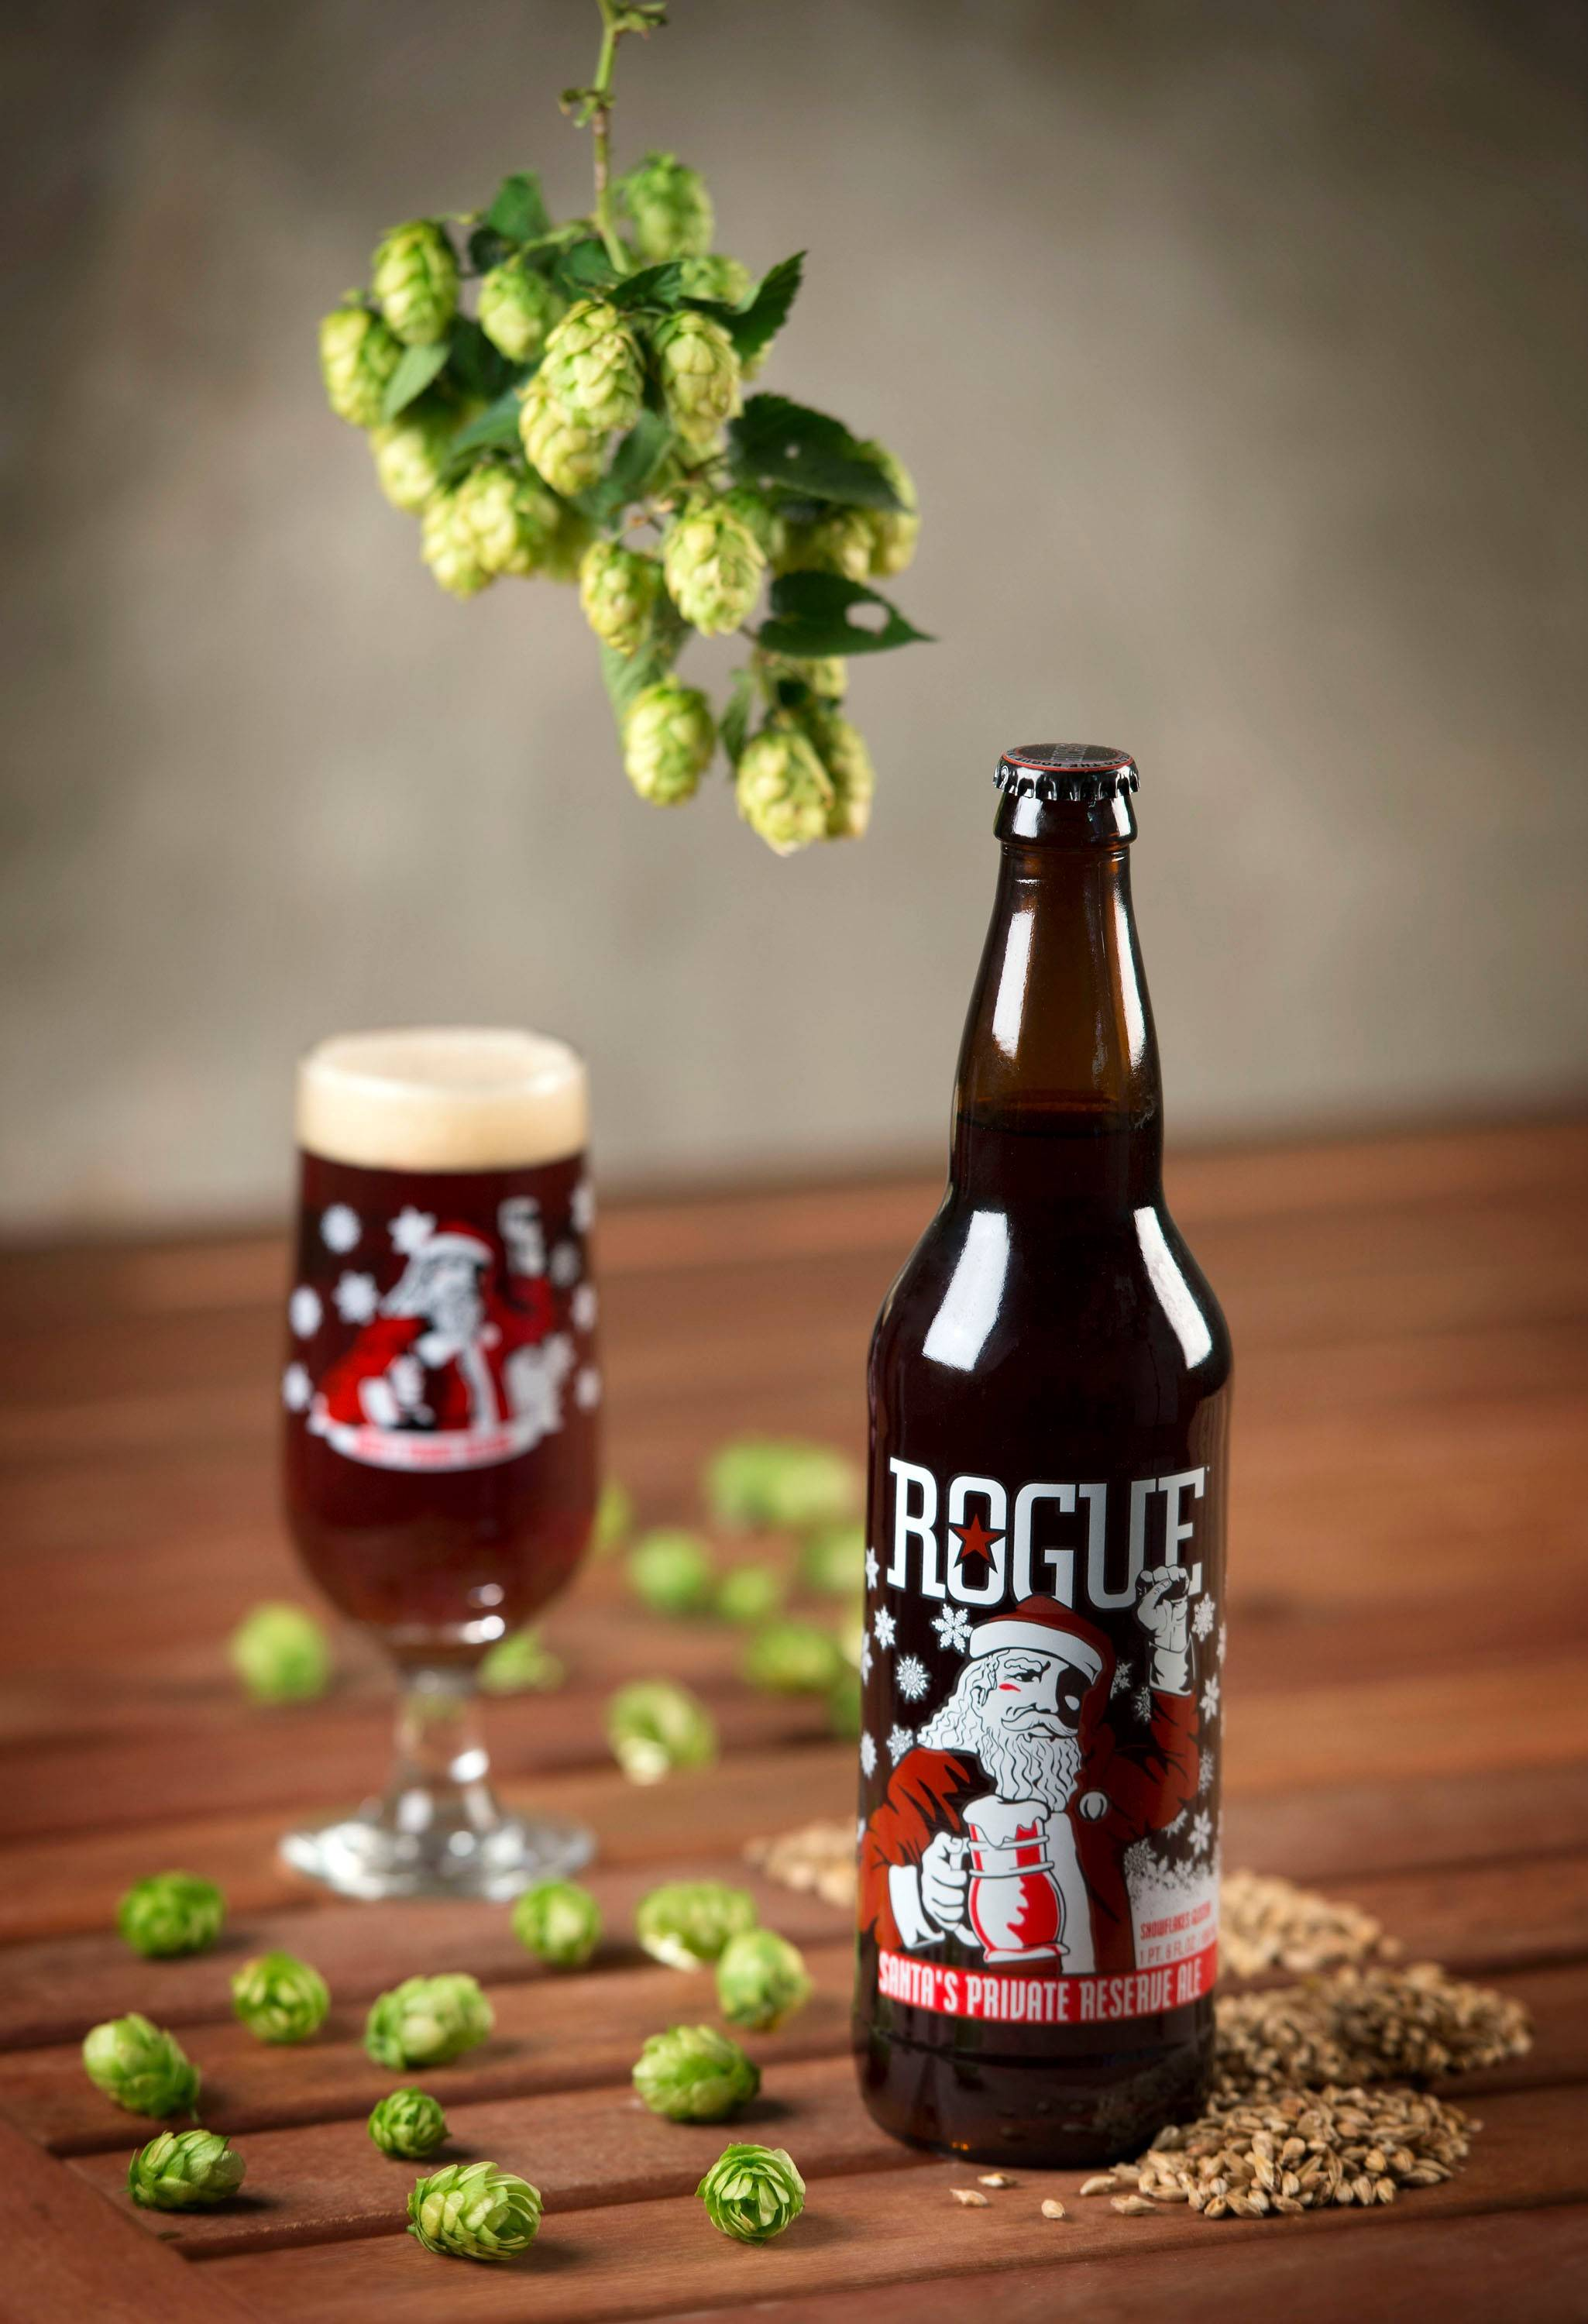 This product image released by Rogue Ales of Newport, Ore., shows a bottle of the company's Santa's Private Reserve. Rogue Aleís annual holiday offering is a double-hopped red ale made with hops and barley from the breweryís own farm. The brewery and distillery founded in 1988 even malted the grain in the beer themselves. The result is a two-time World Beer Championship gold medal-winning amber beer with a roasted caramel malt flavor and a hoppy pine finish.